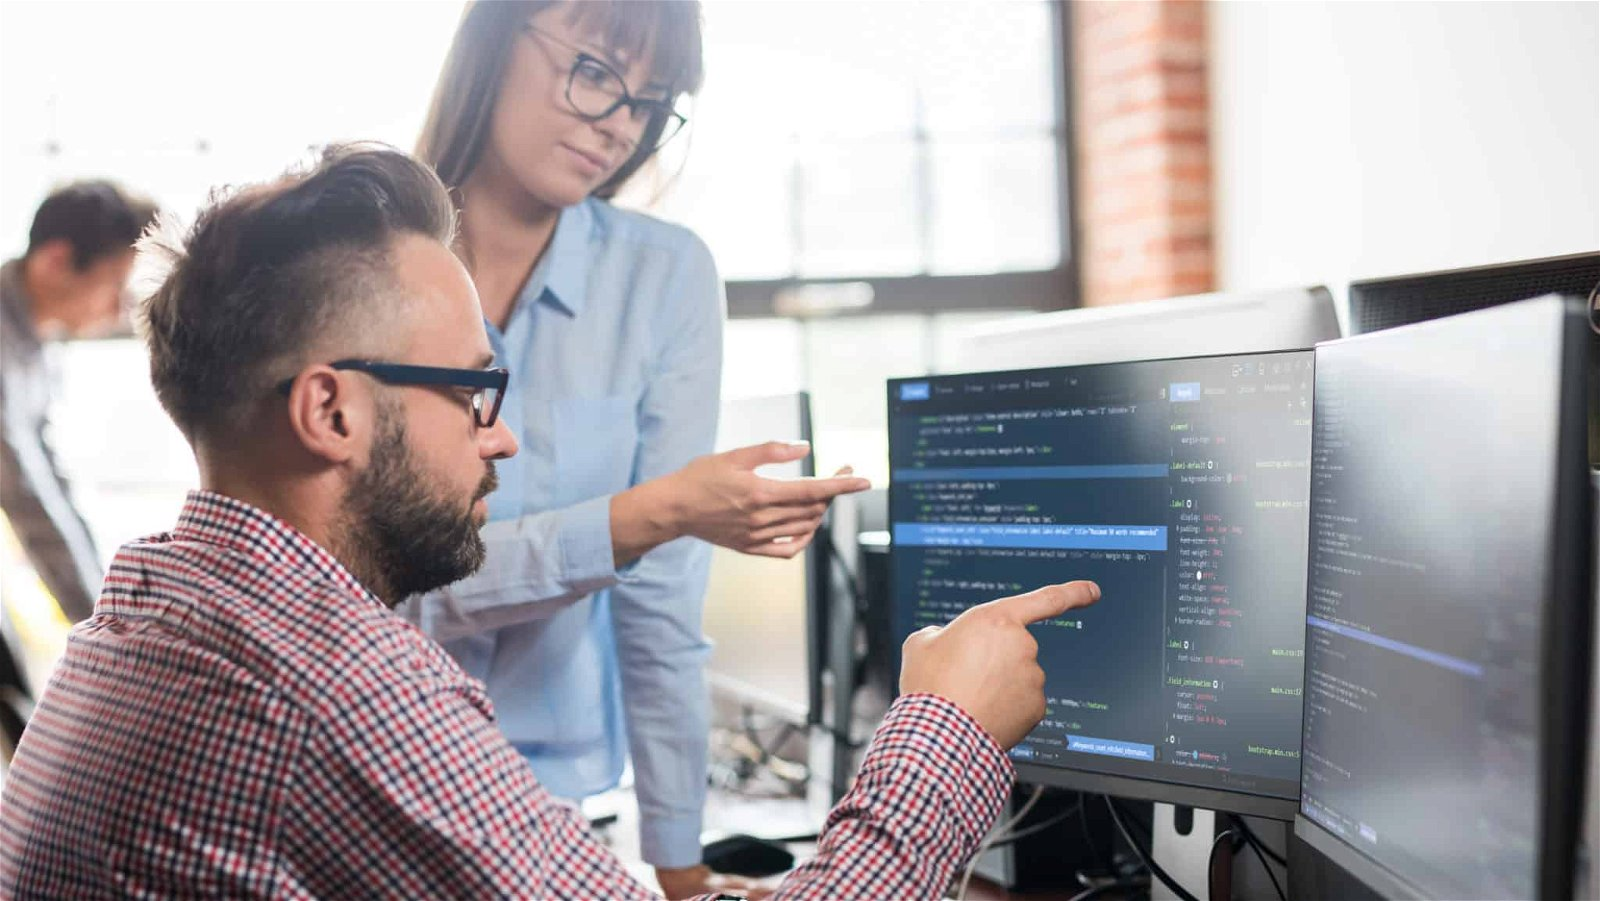 Choosing Cybersecurity as a Career - Analytics Insight